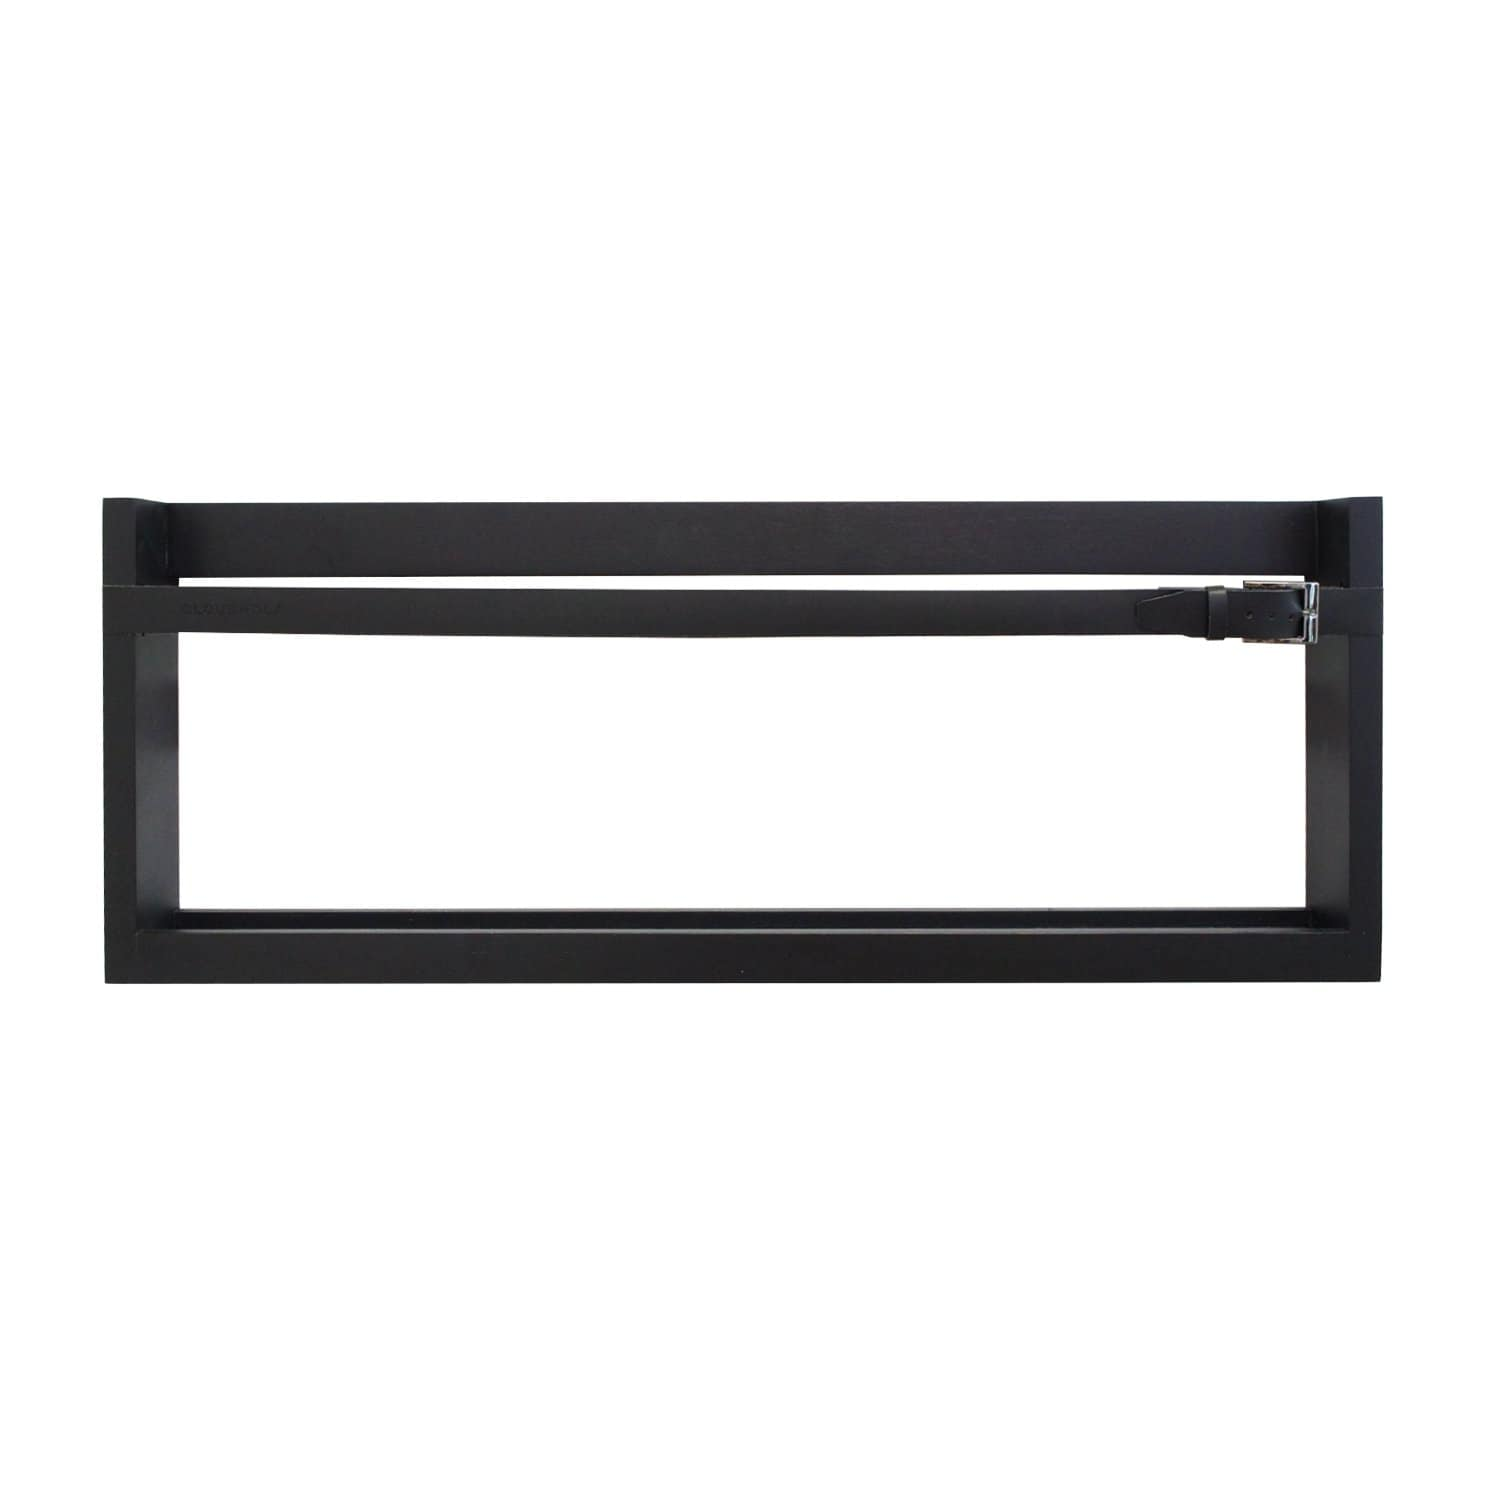 cloudnola Rack Black Showroom Wall Rack